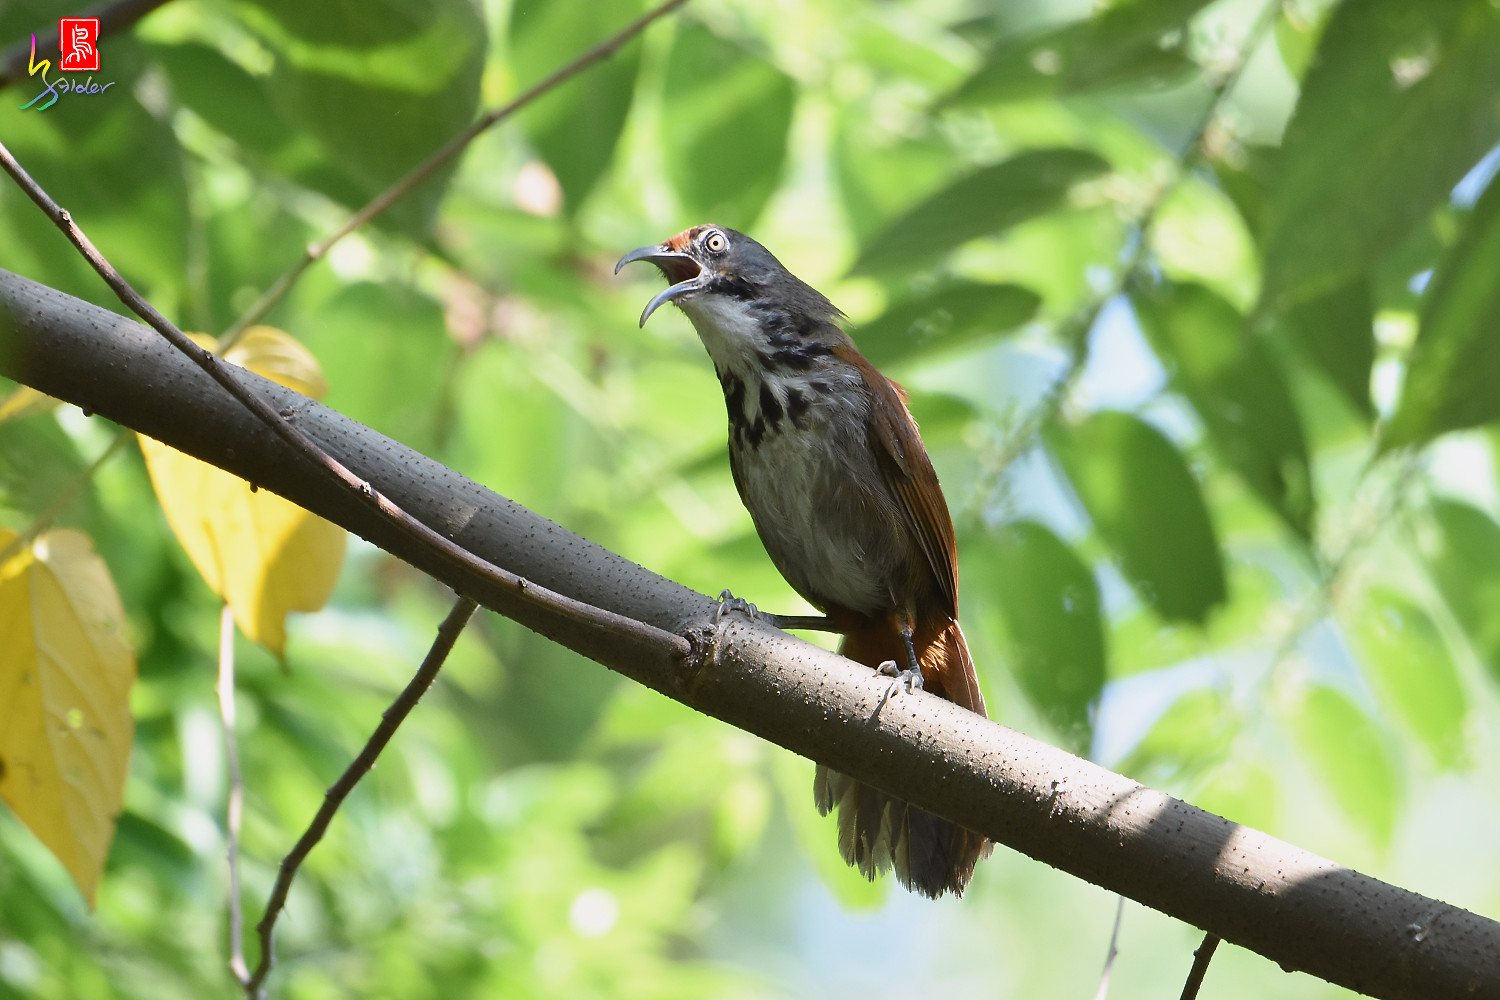 Rusty-cheeked_Scimitar_Babbler_8135